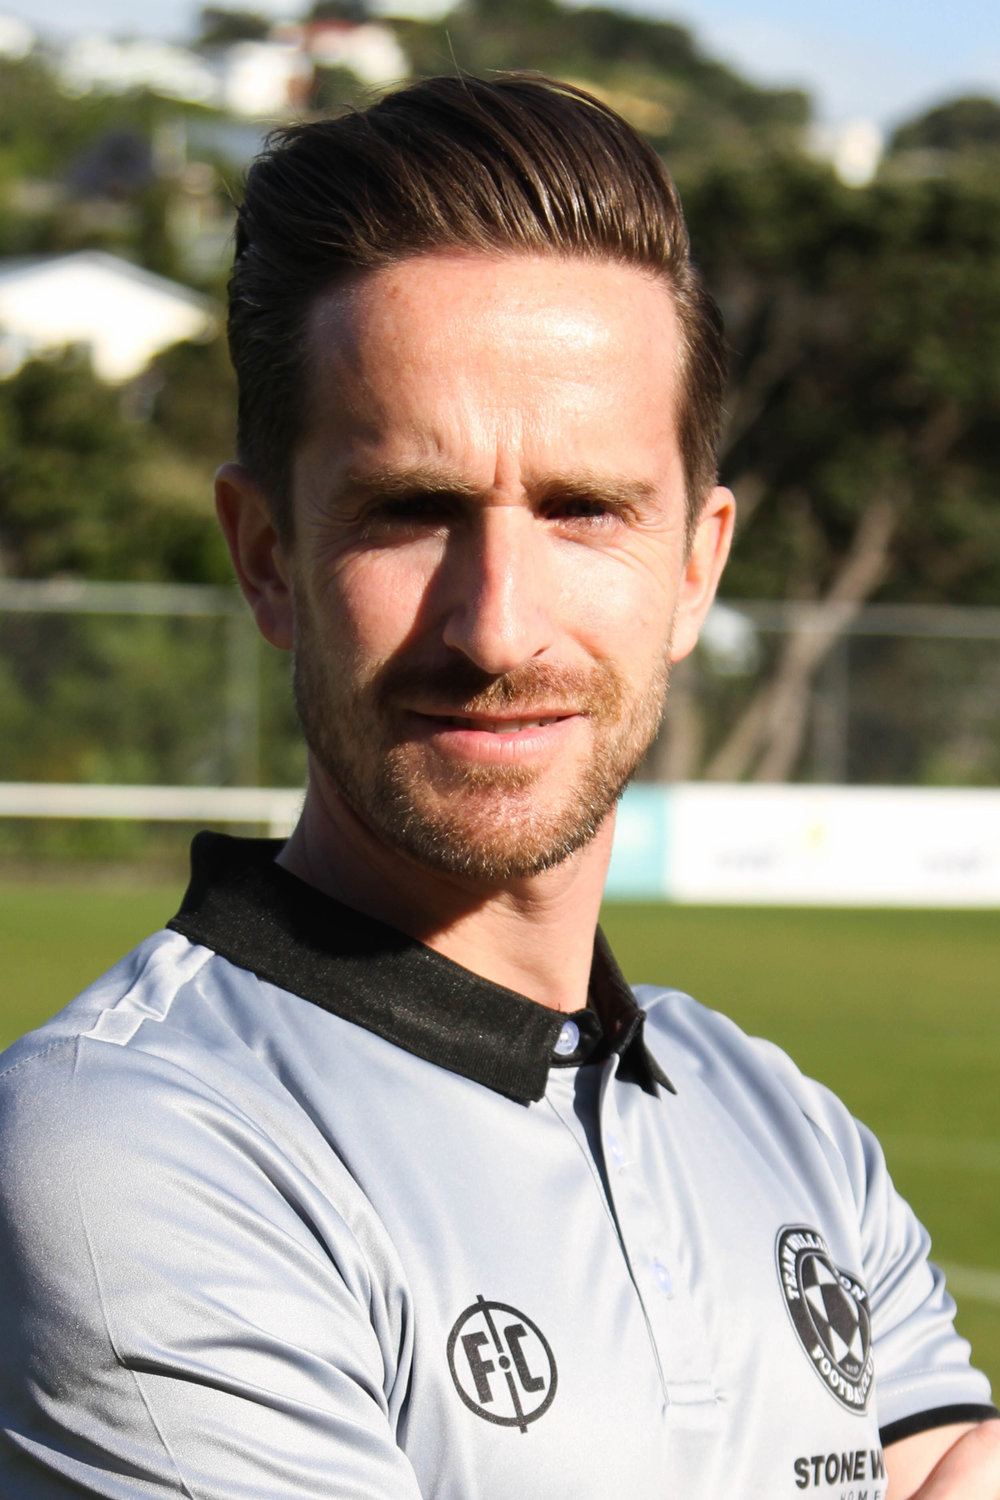 José Figueira - Head Coach of Team Wellington for the 2016/17 and 2017/18 Premiership season